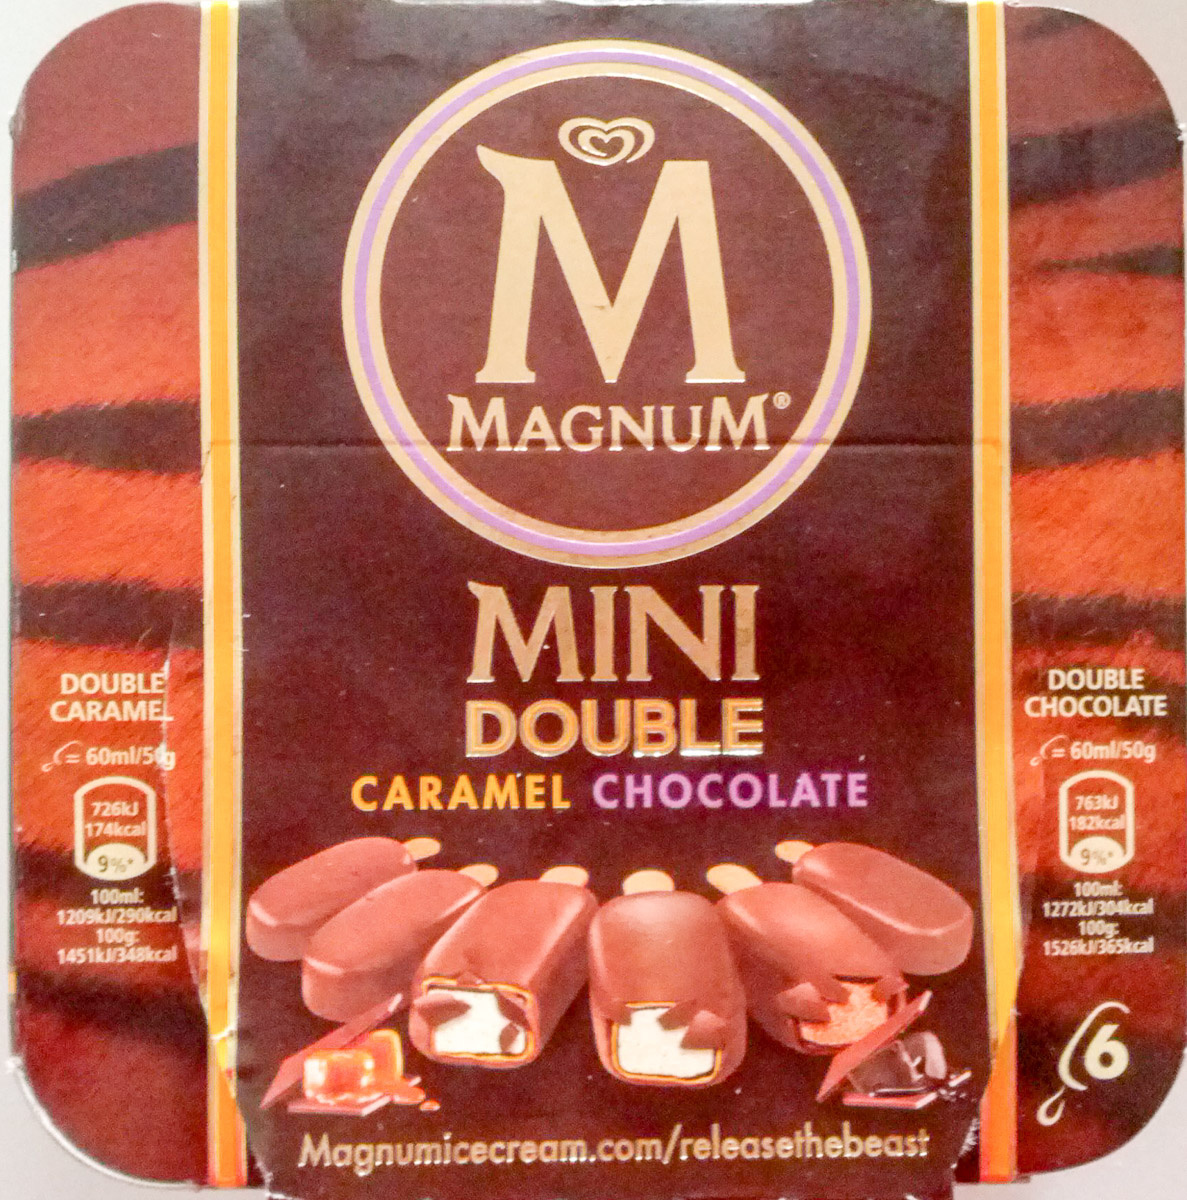 Mini Double Caramel Chocolate - Product - de